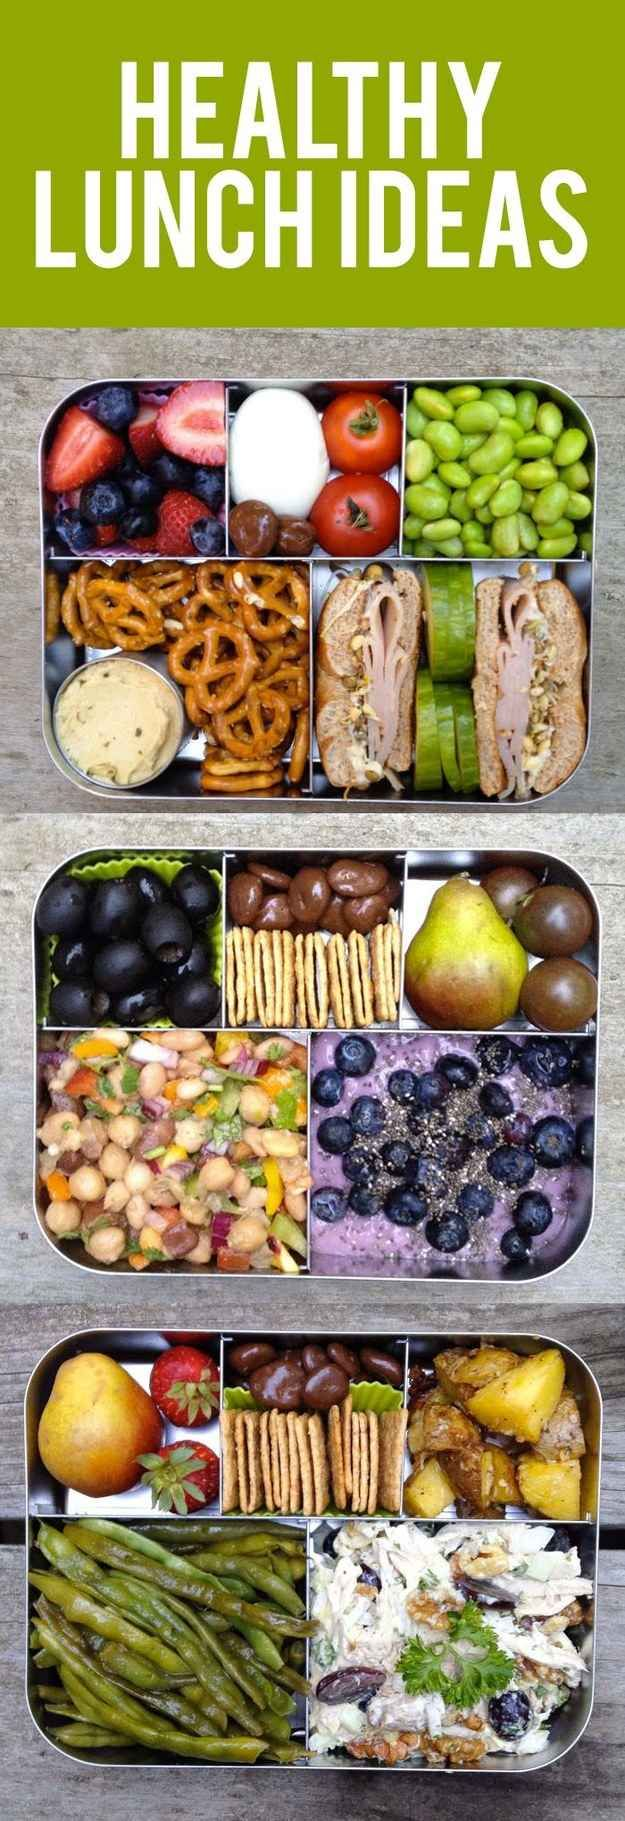 Healthy lunches in cute packaging will make work easier and more delicious.  http://www.buzzfeed.com/lindsayhunt/crystal-pinterest-ball?utm_medium=email&utm_campaign=Food%201216&utm_content=Food%201216+CID_4cfa29bf82ea39753c0e4aa590d47cd0&utm_source=BuzzFeed%20Newsletters#.xmJMybqJd